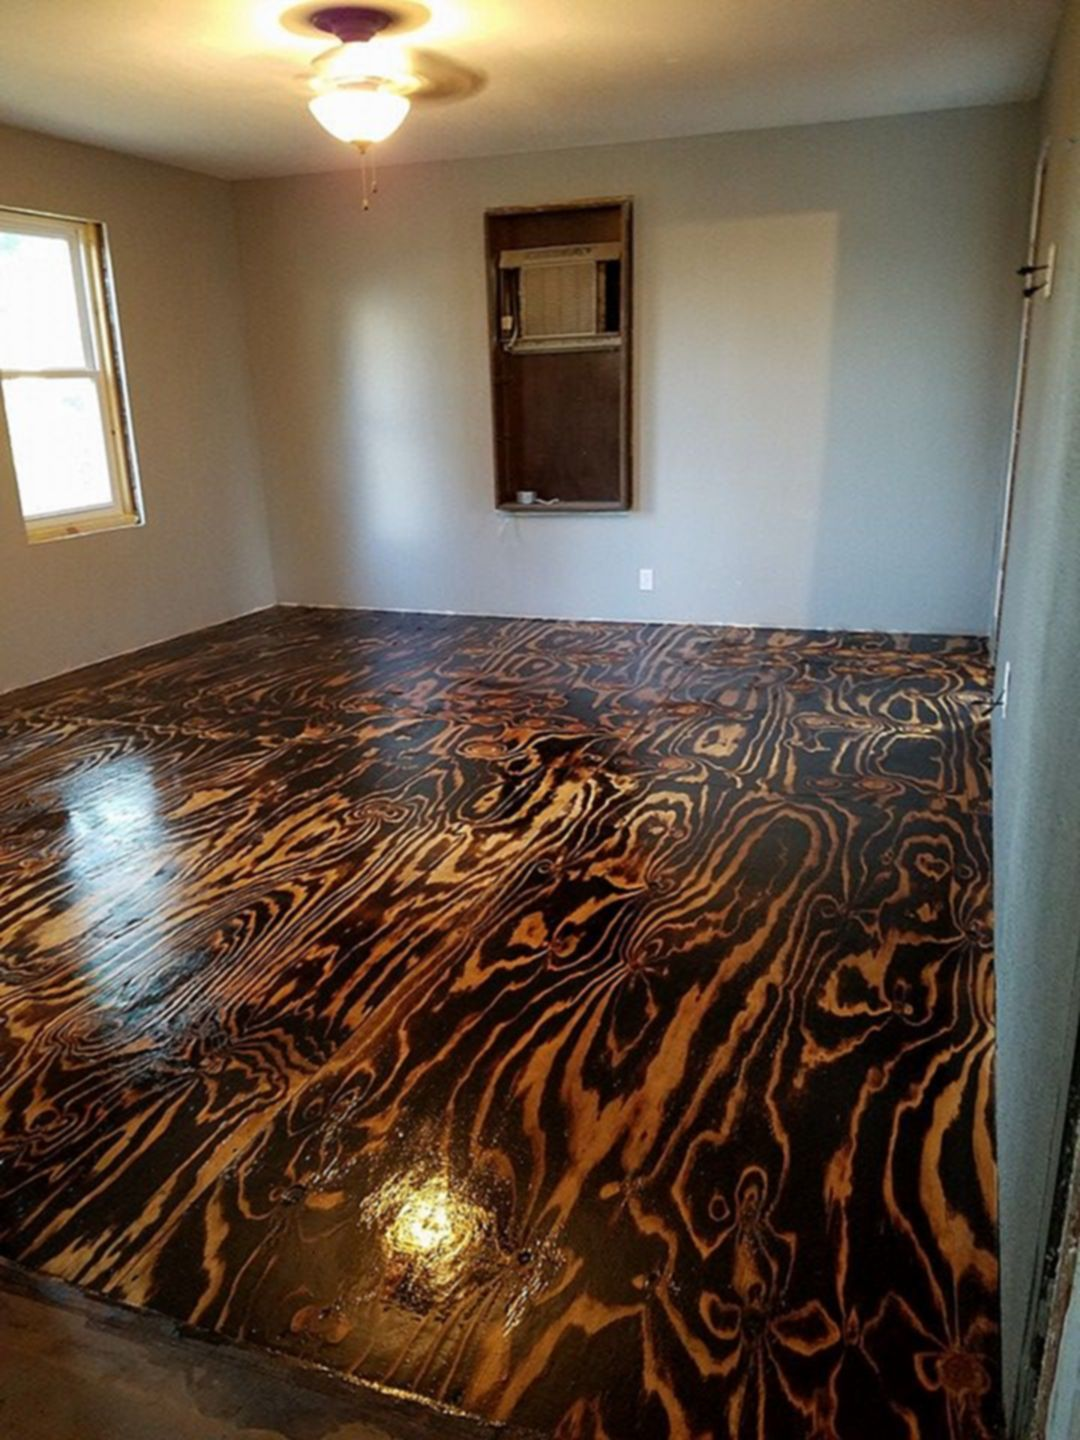 20 Amazing Ideas To Make Your Home Floor Be More Elegant